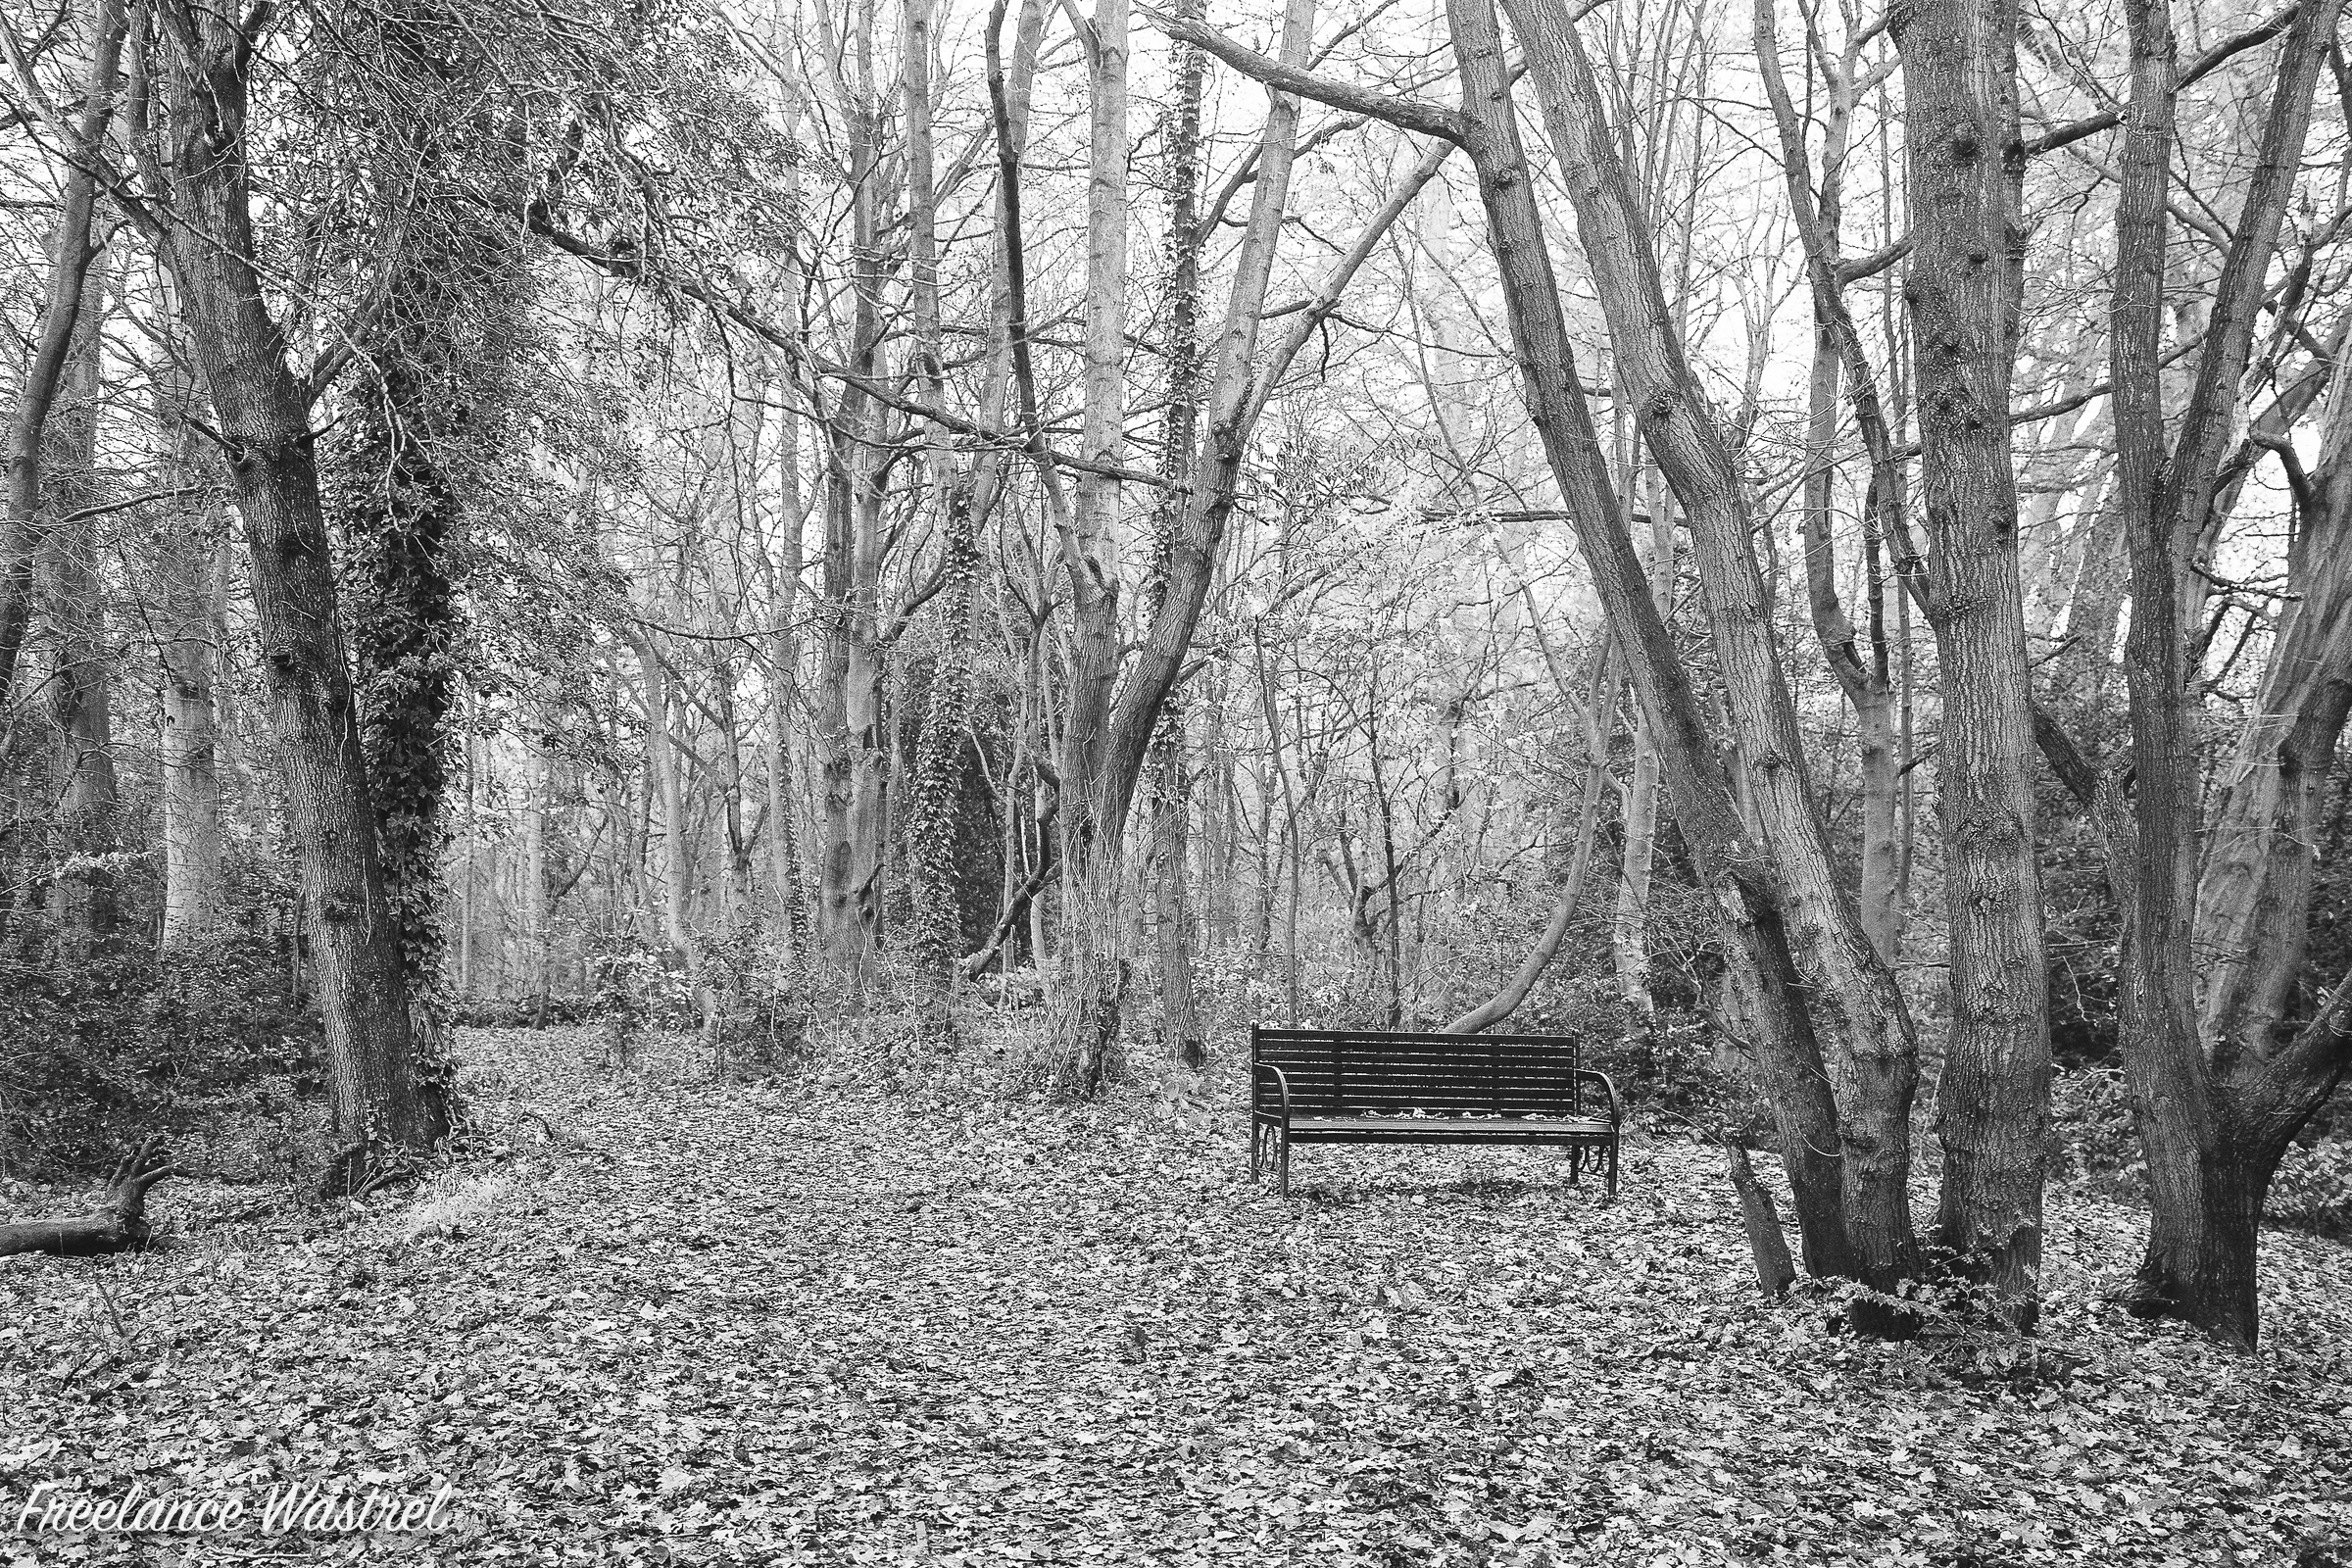 Bench in the wood, December 2018